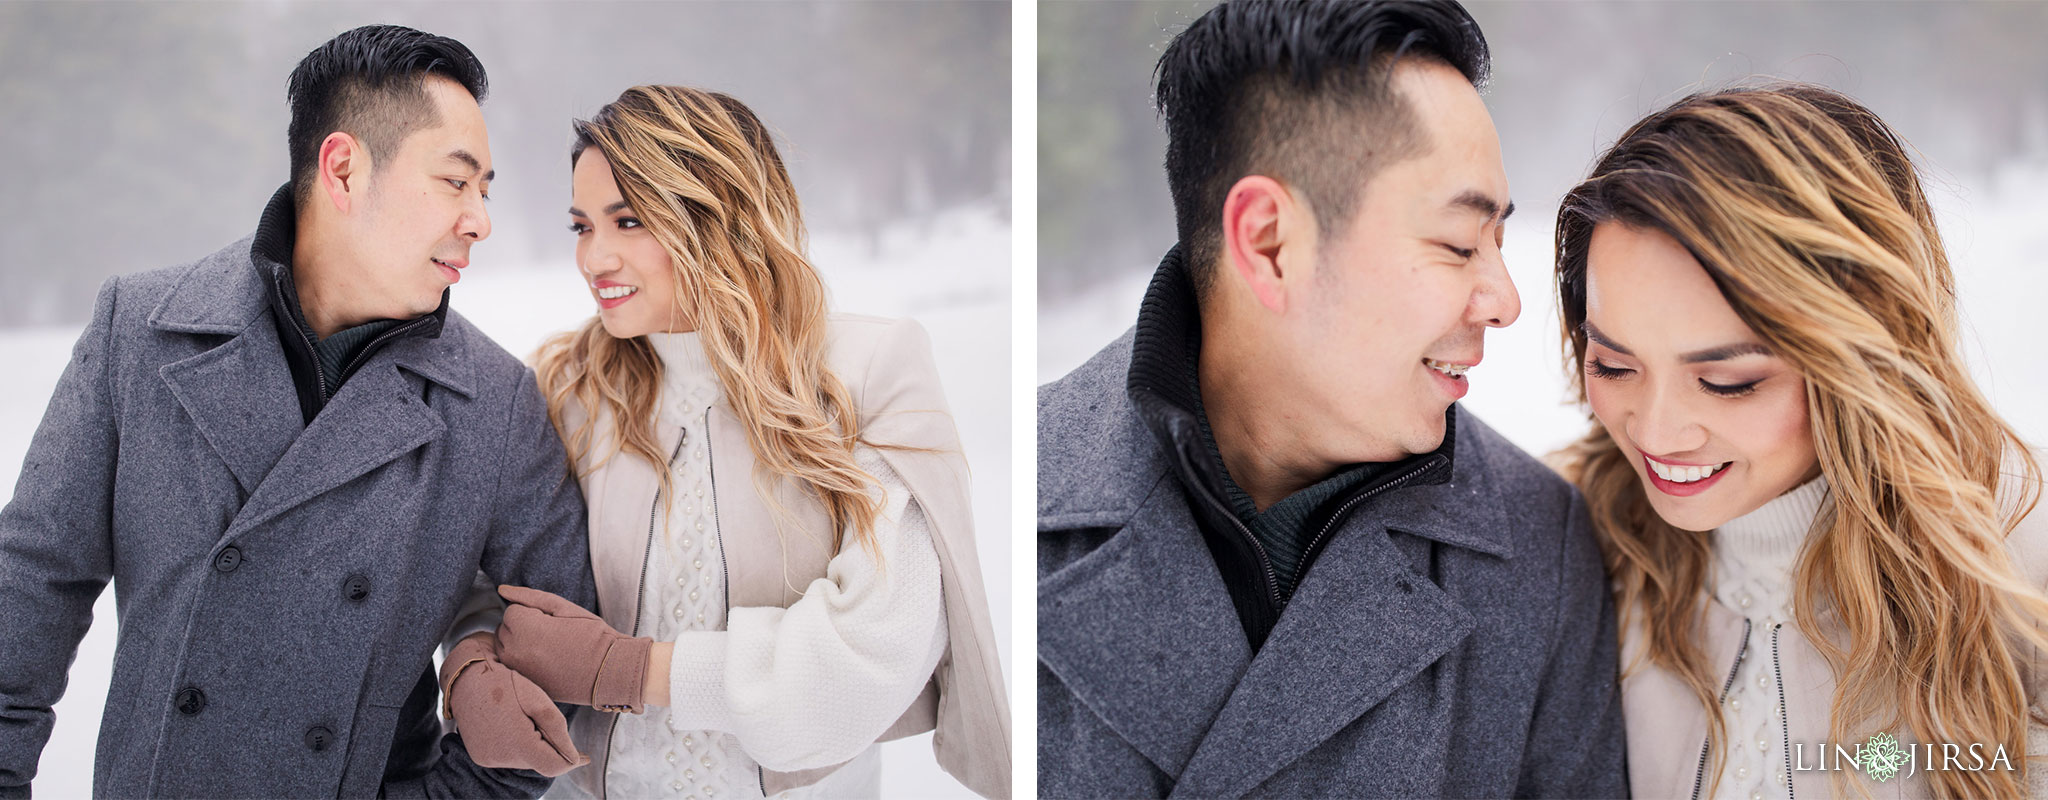 04 Green Valley Lake Snowy Winter Engagement Photography